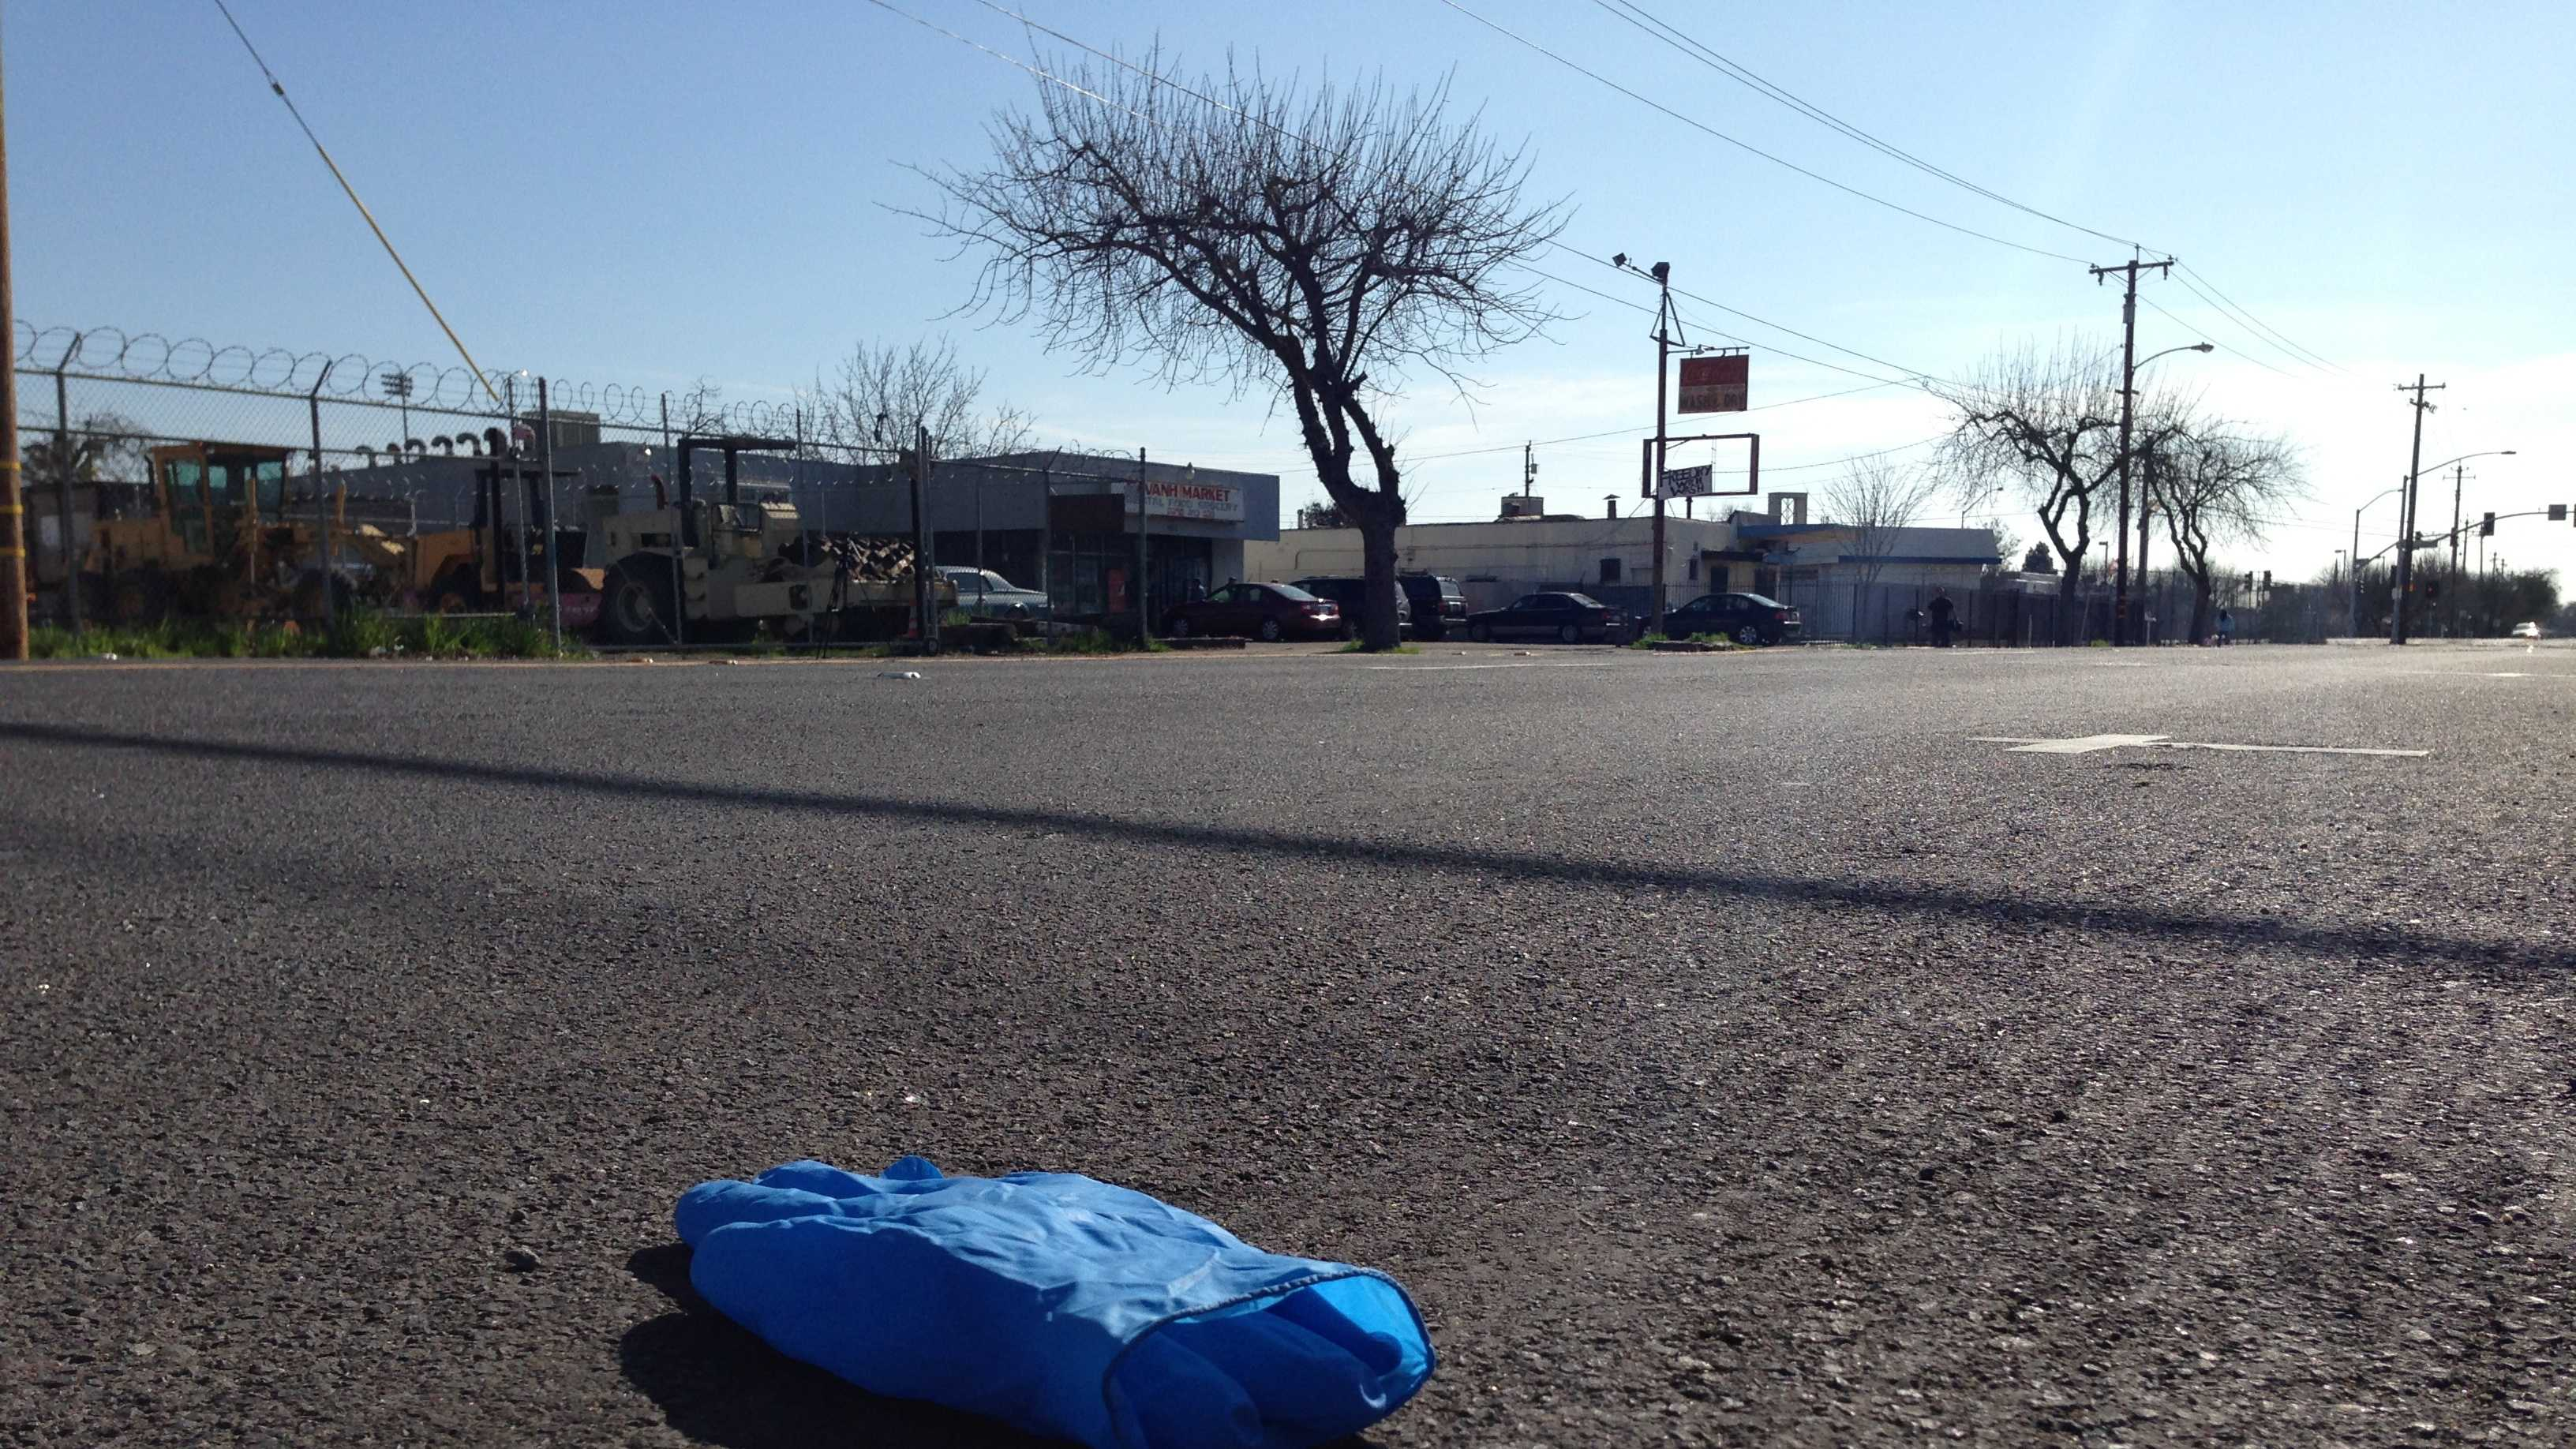 A paramedics glove lies on South Lincoln Street in Stockton, where police said a 34-year-old man was shot and killed early Sunday morning.